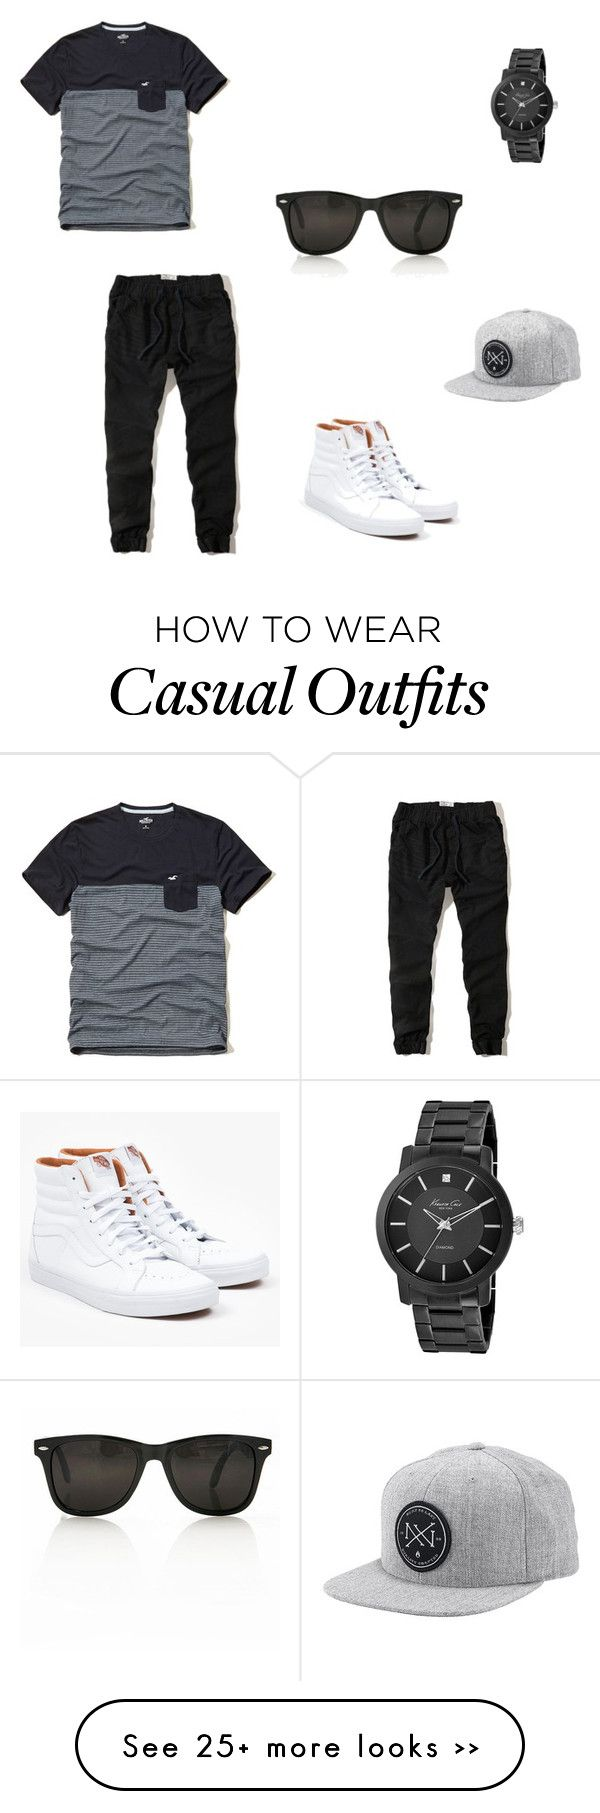 """Casual day for guys"" by omgherica on Polyvore featuring Hollister Co., Vans, Nixon and Kenneth Cole"